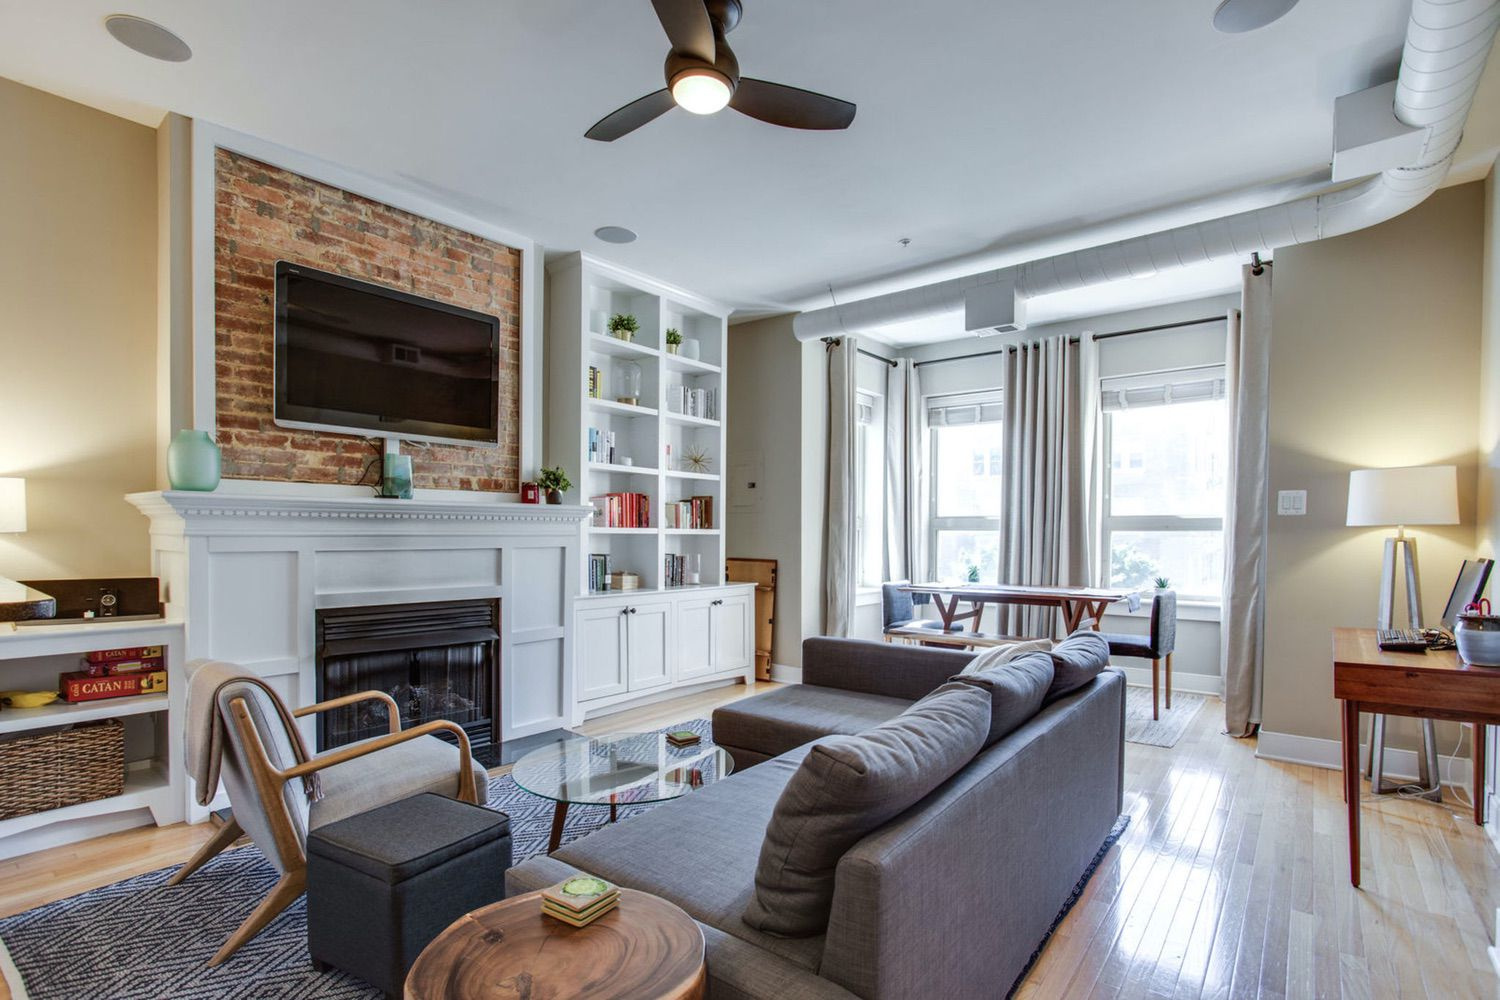 1305 Clifton Street NW, unit 3 offers charm and modern conveniences!